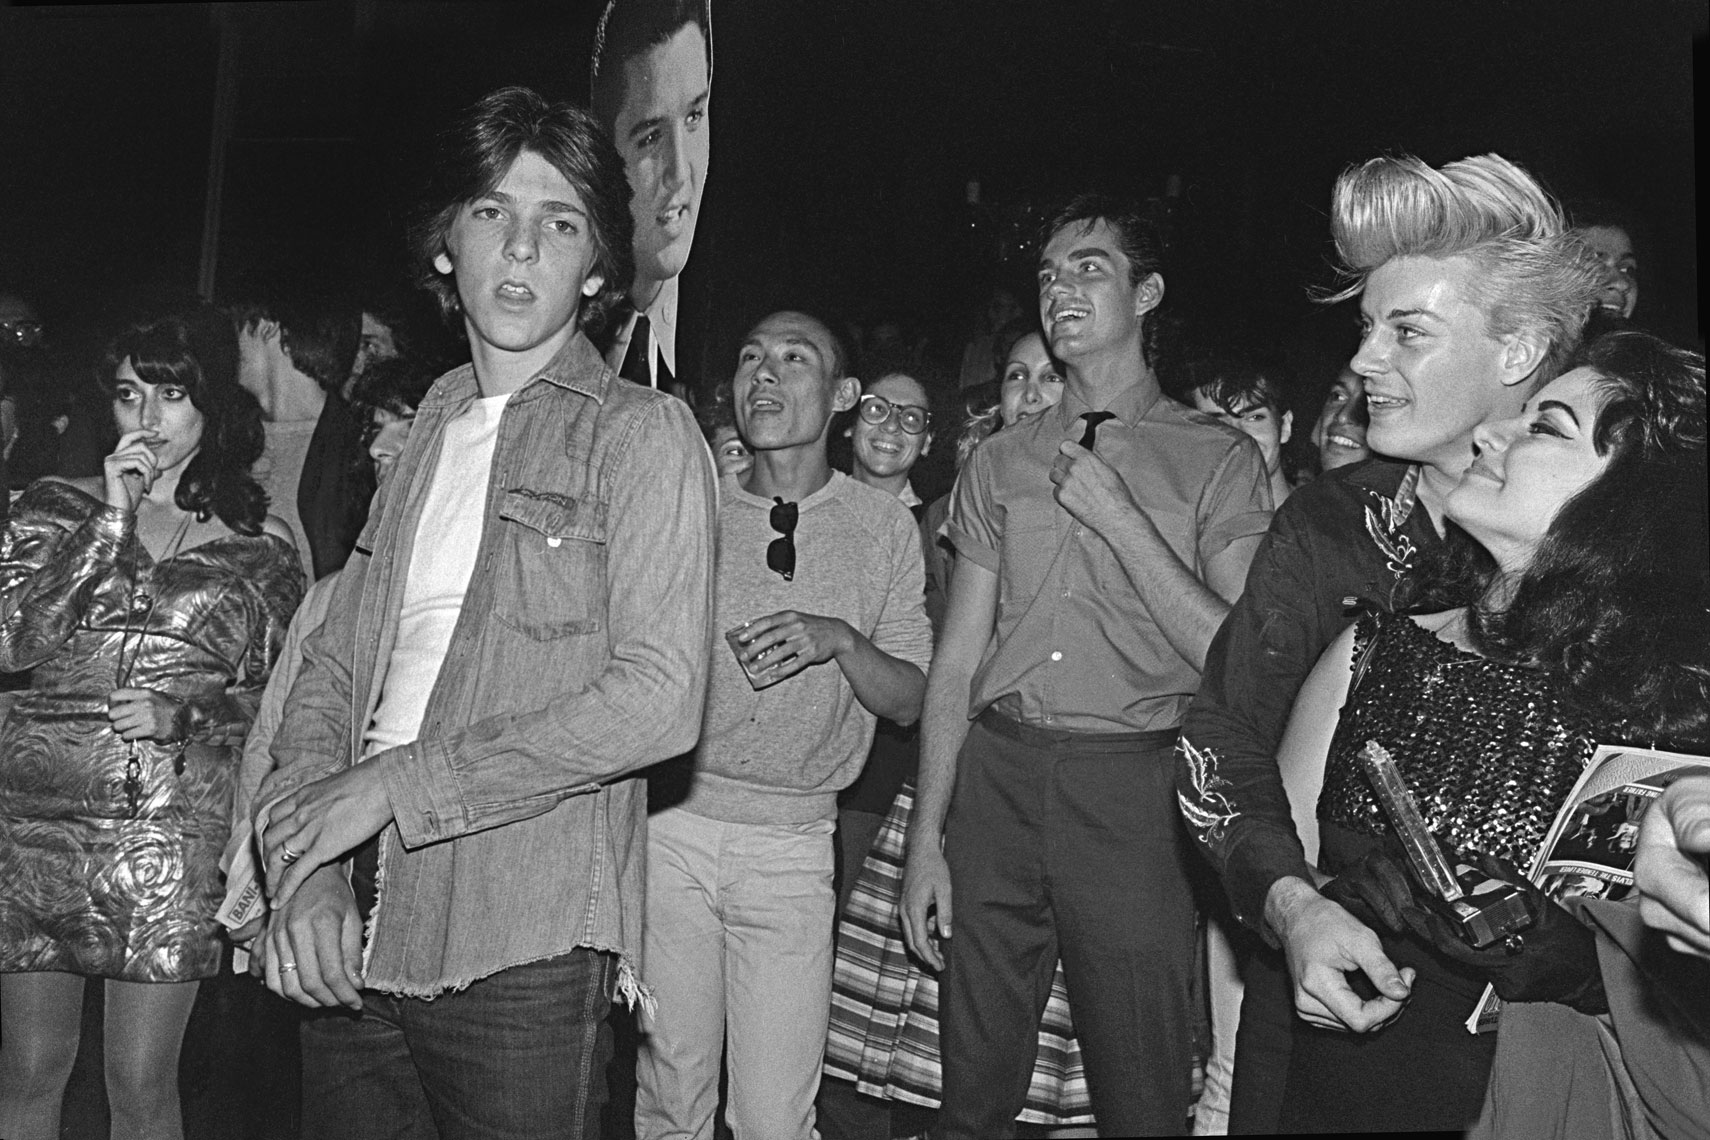 32_Club57_Elvis-Memorial-Party-out-on-street-after-fire-in-Club_0880.jpg